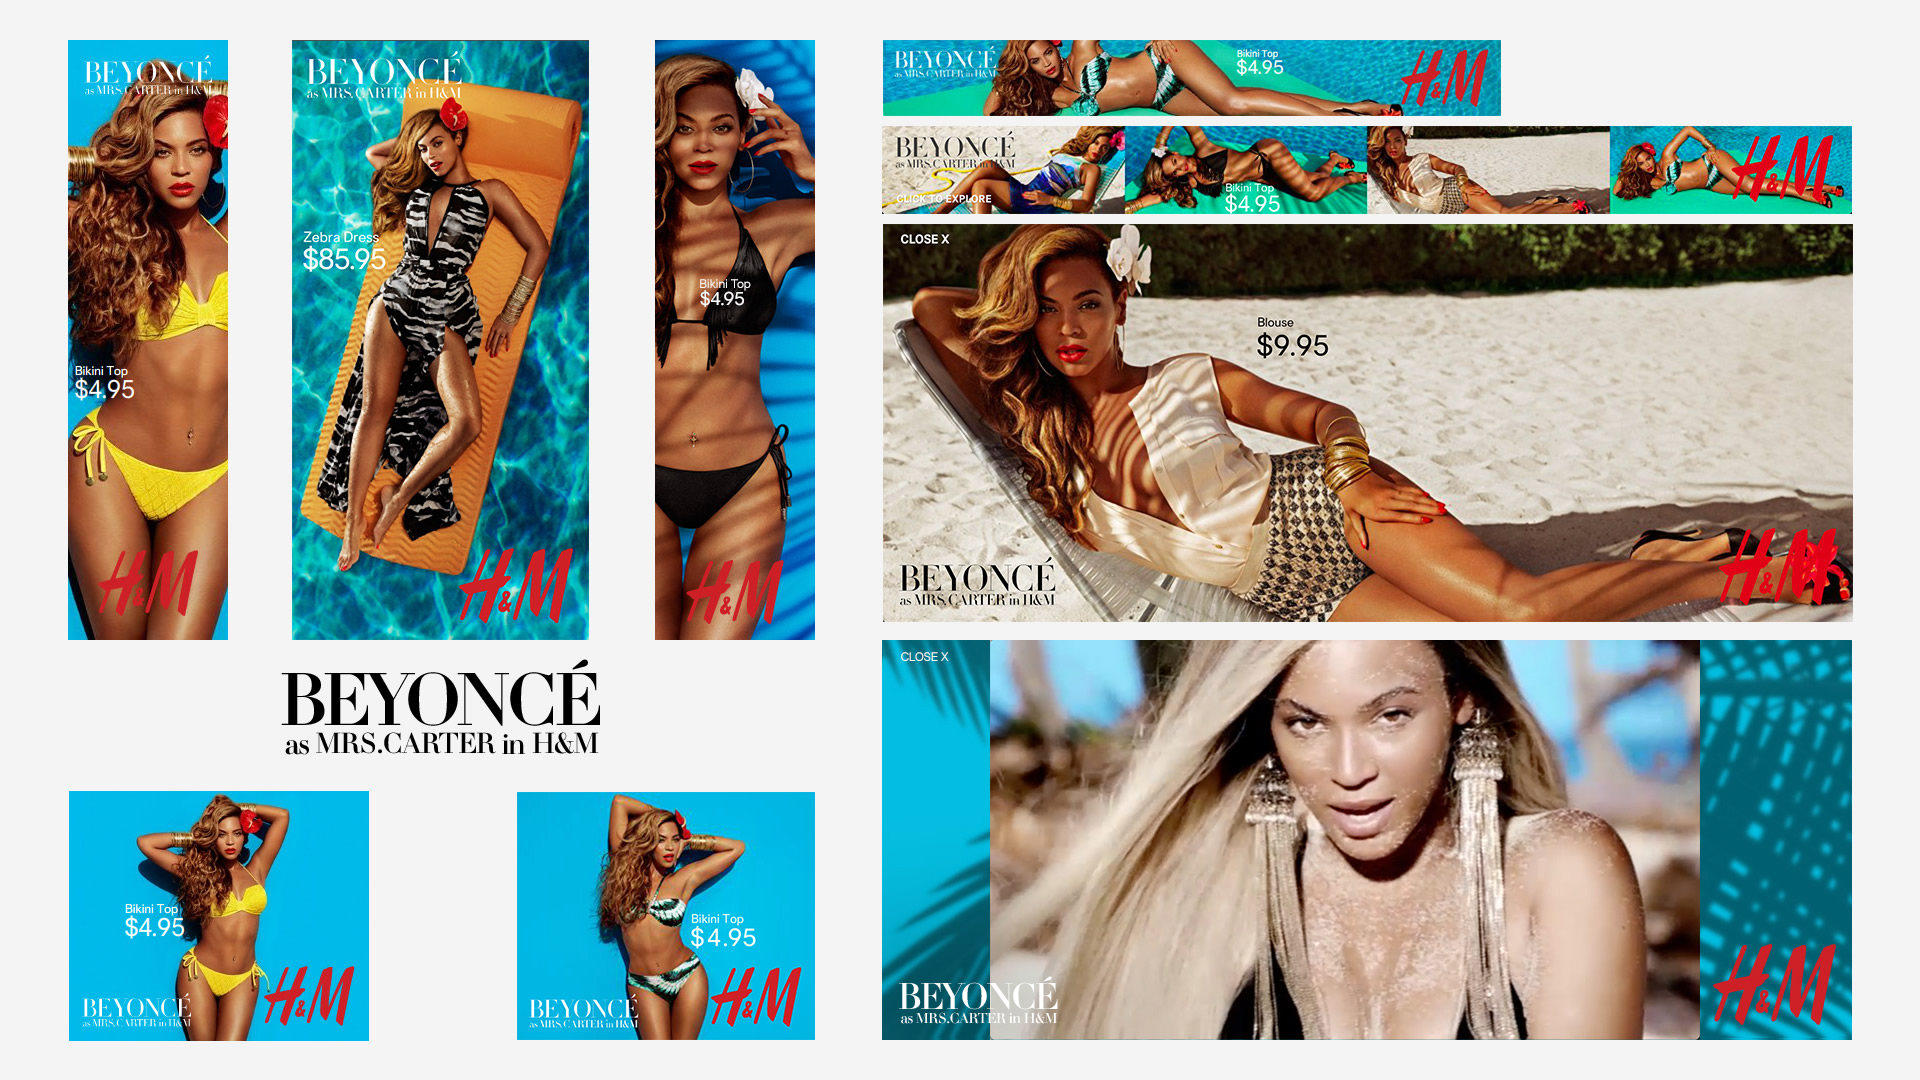 Beyoncé collaberation with H&M for H&M's summer campagin